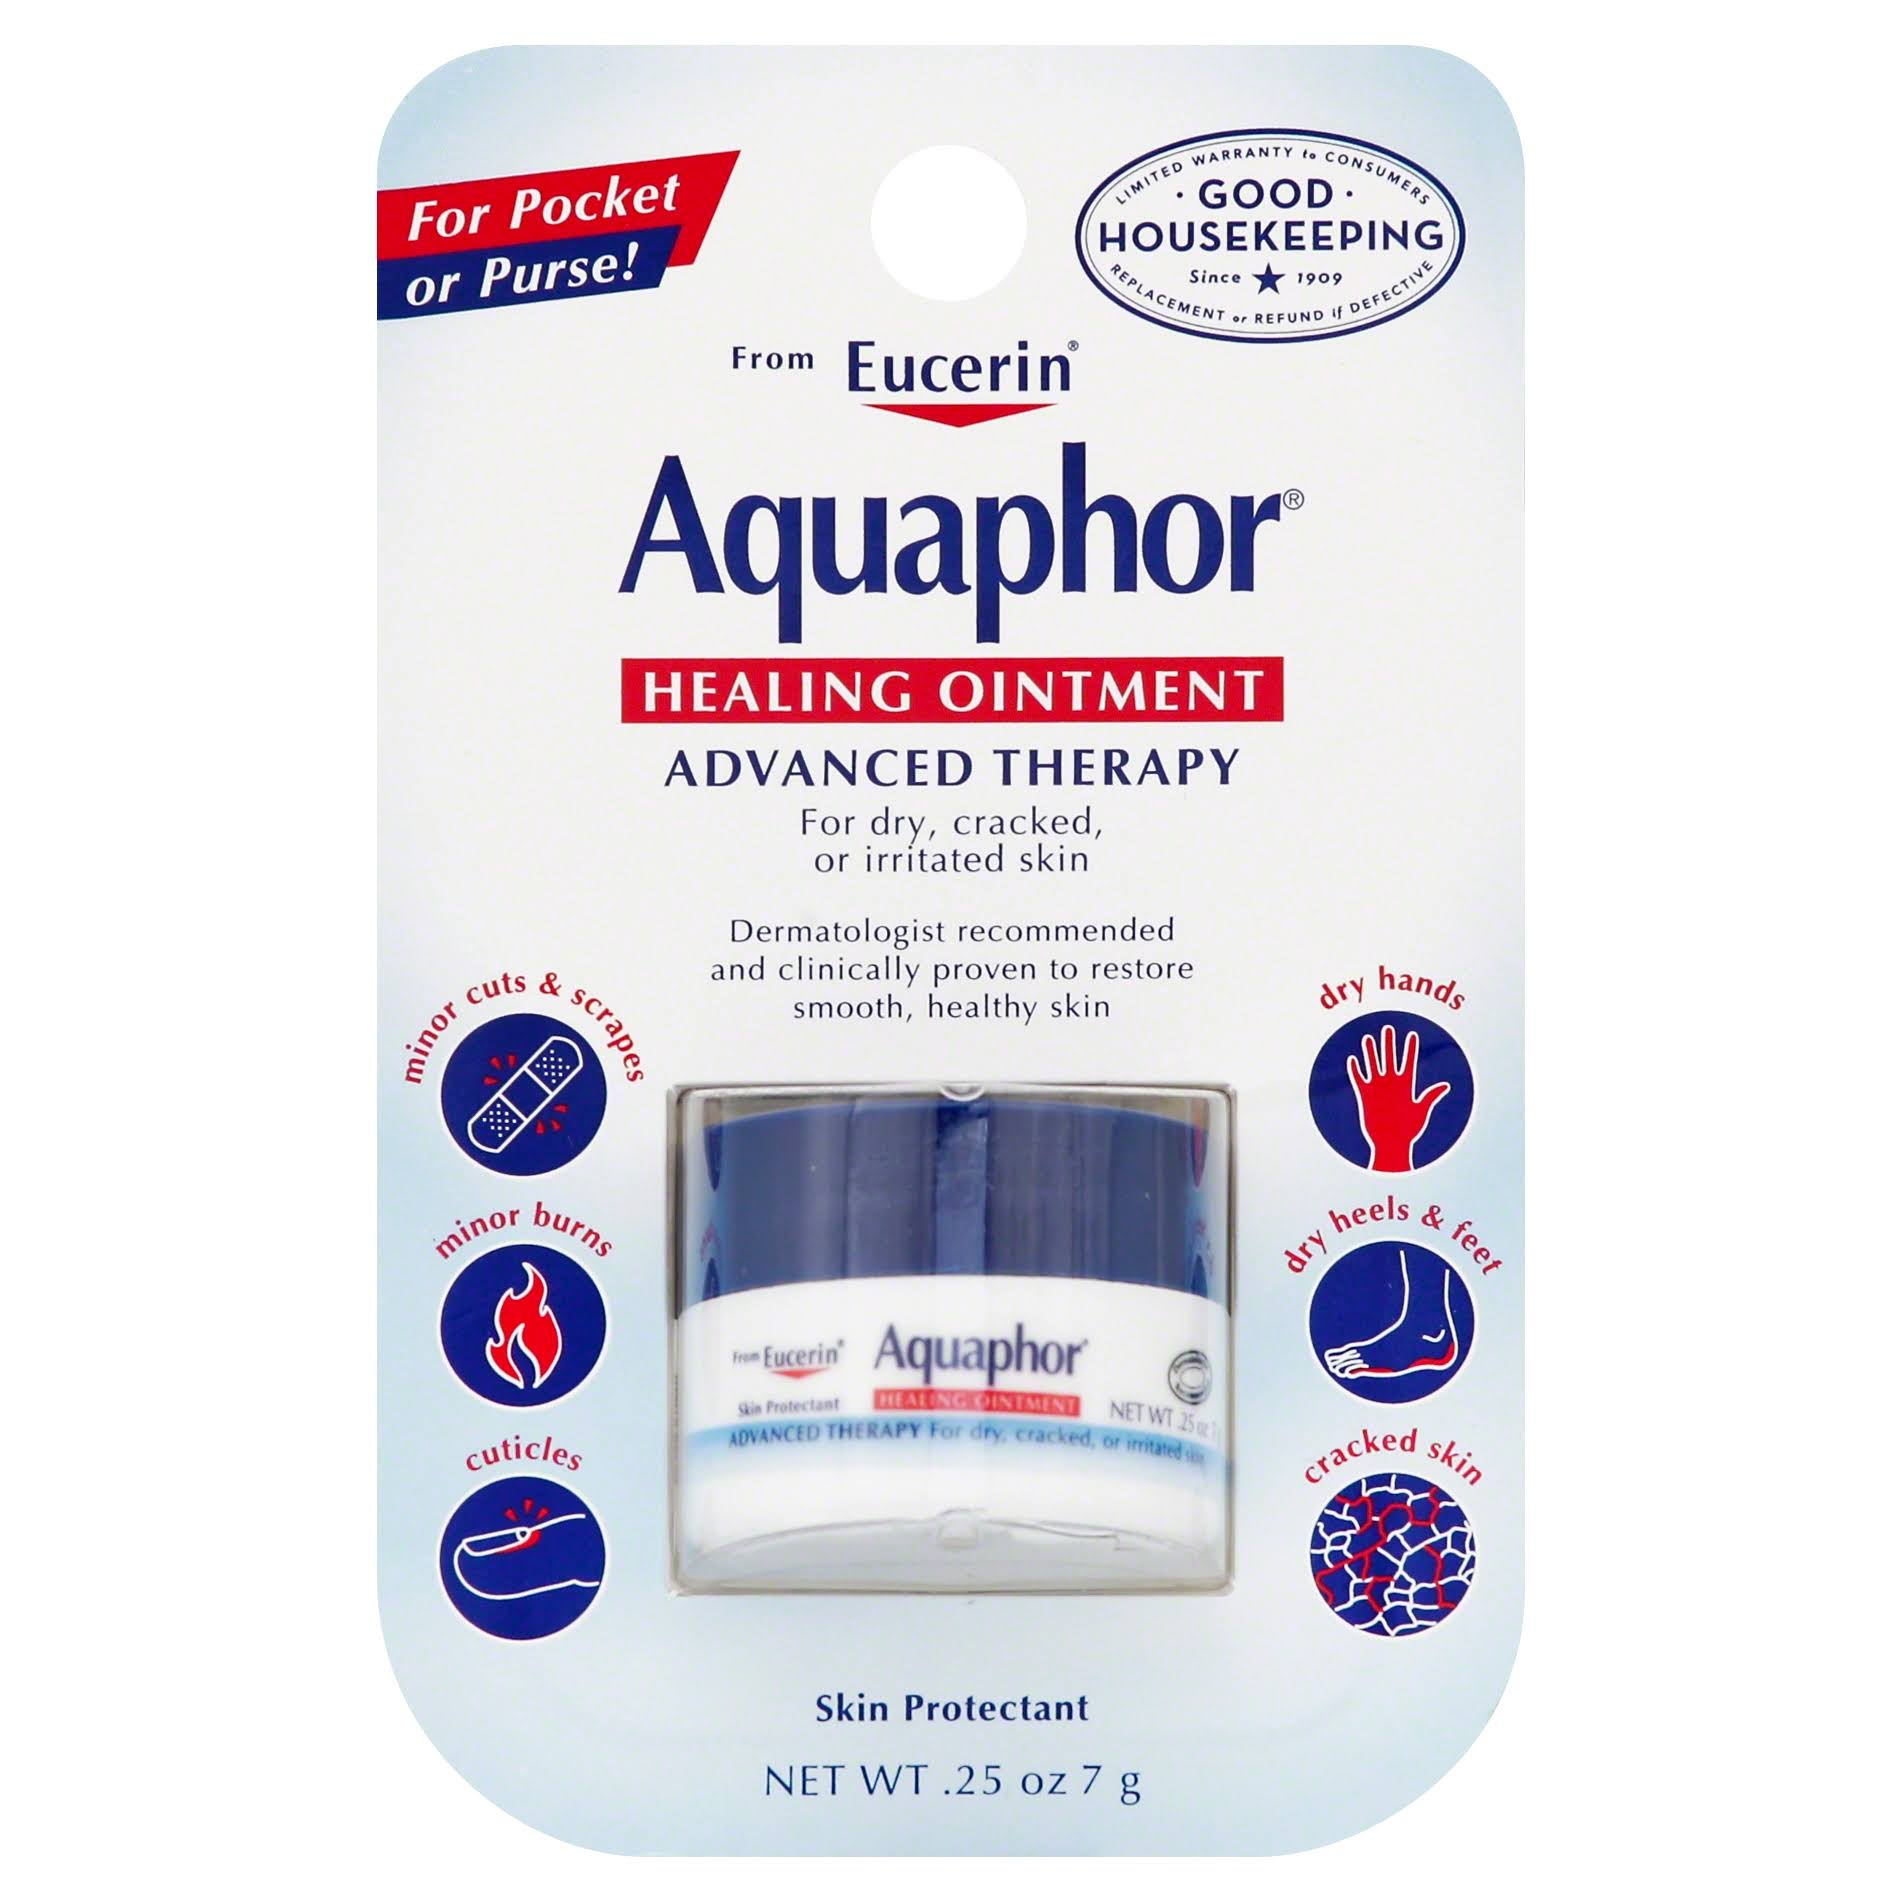 Aquaphor Advanced Therapy Healing Ointment Skin Protectant - 0.25oz